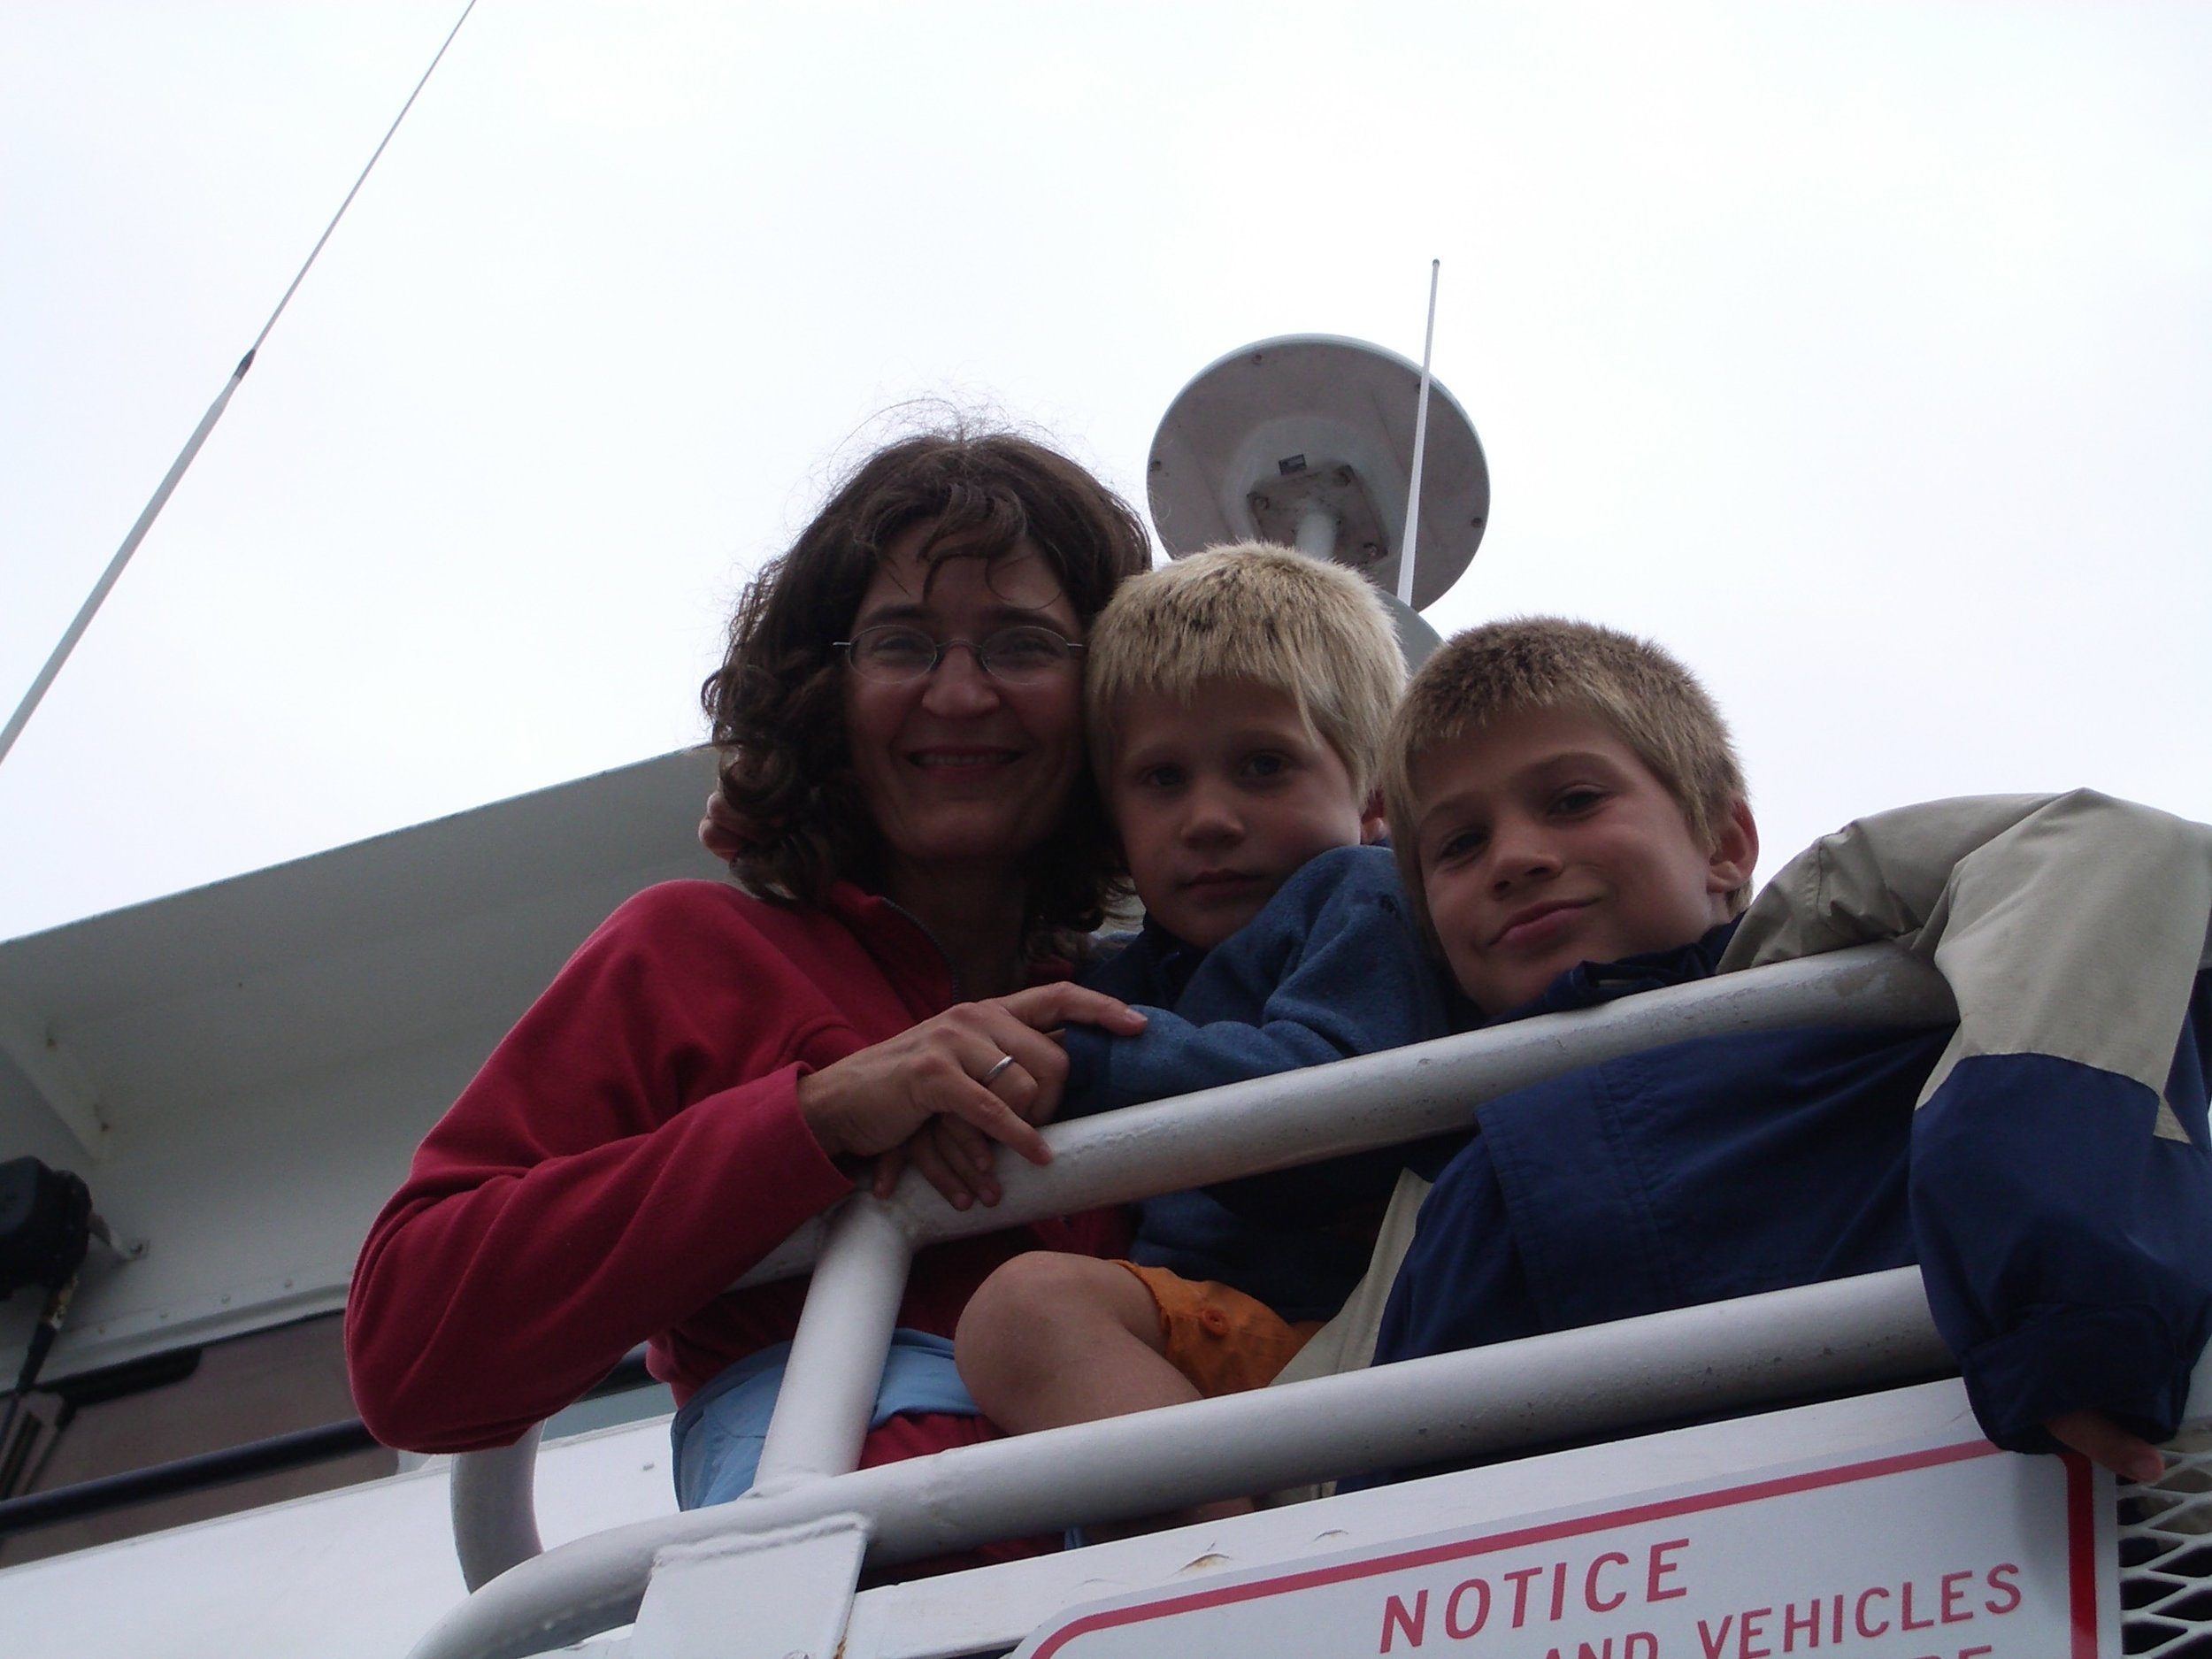 Jakob (right) with his mother and brother on the ferry